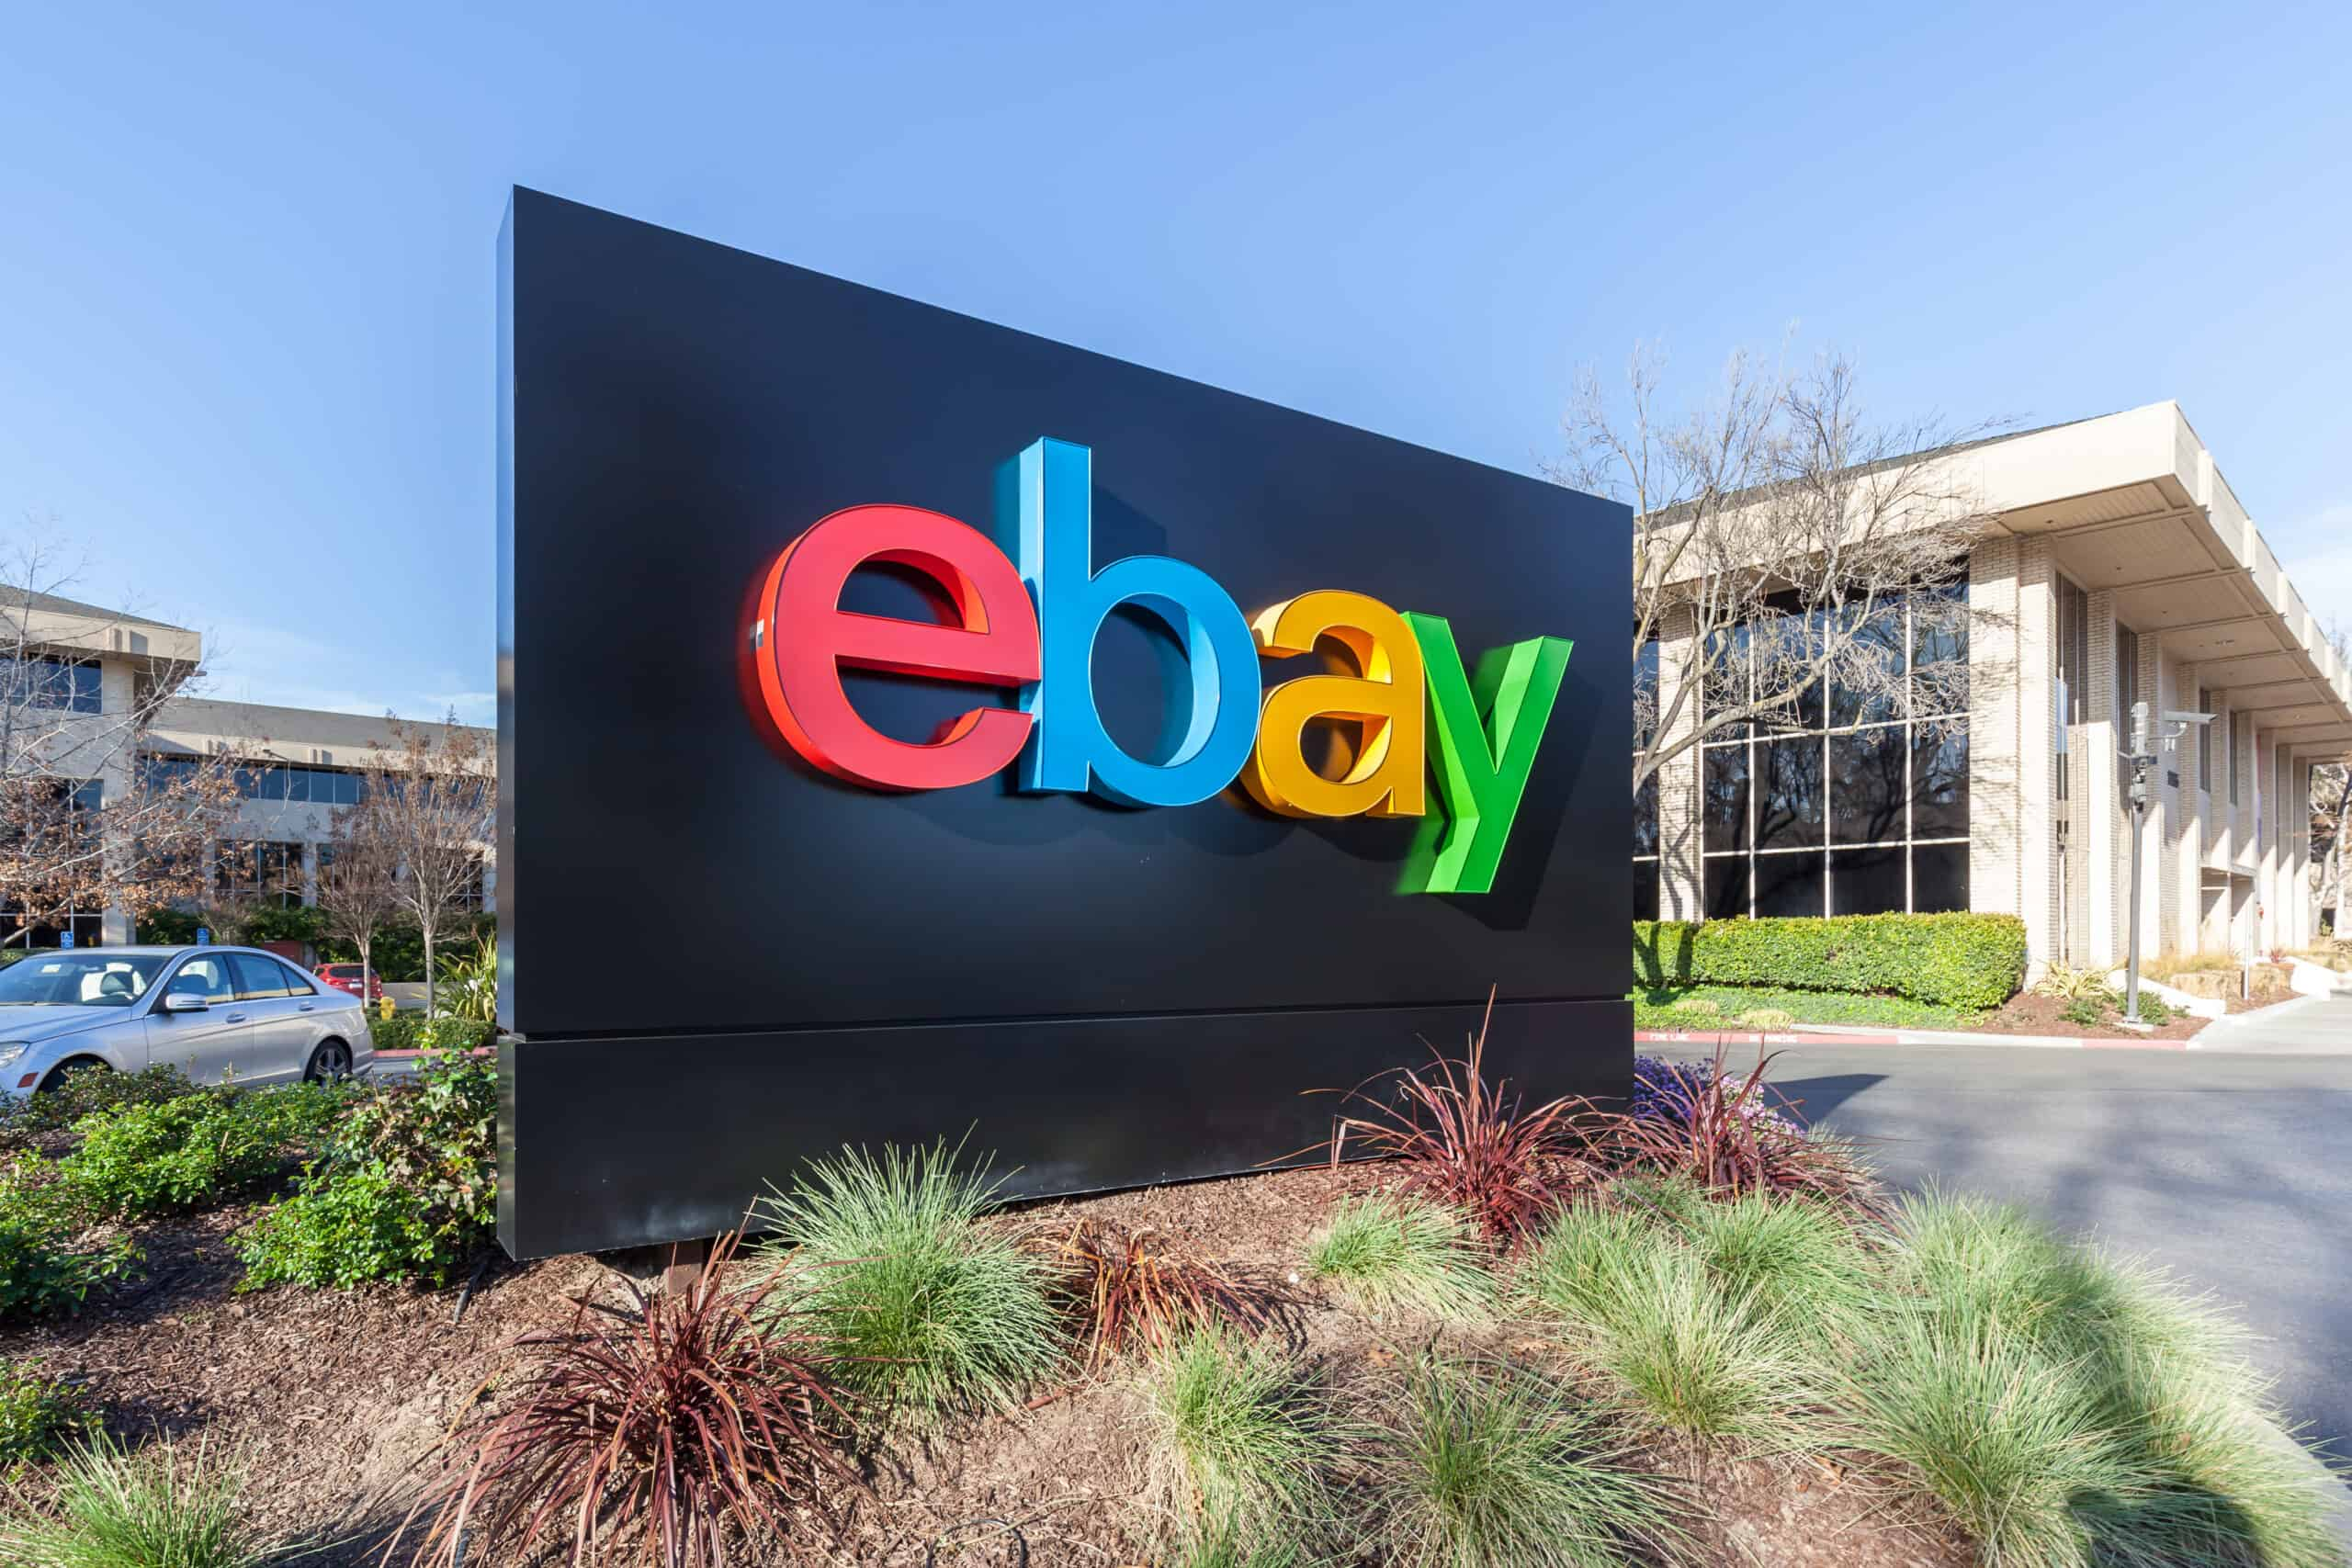 eBay sign at eBay 's headquarters in Silicon Valley. eBay Inc. is a multinational e-commerce corporation that have just launched a new star plan in china